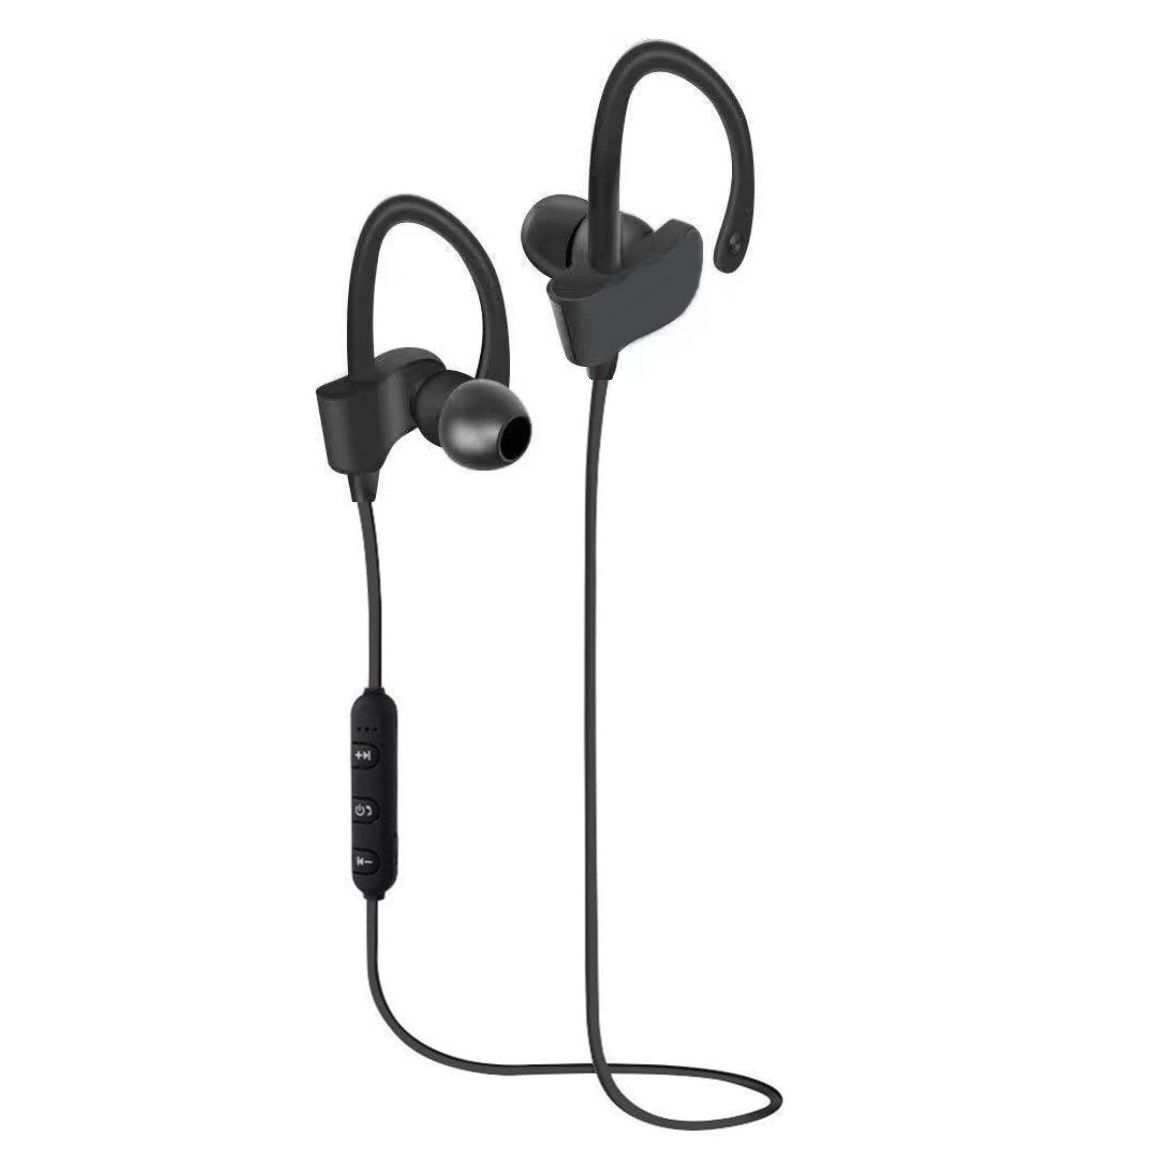 eHIK-QC10x NeckBand Wireless in the ear Behind the Neck - Black